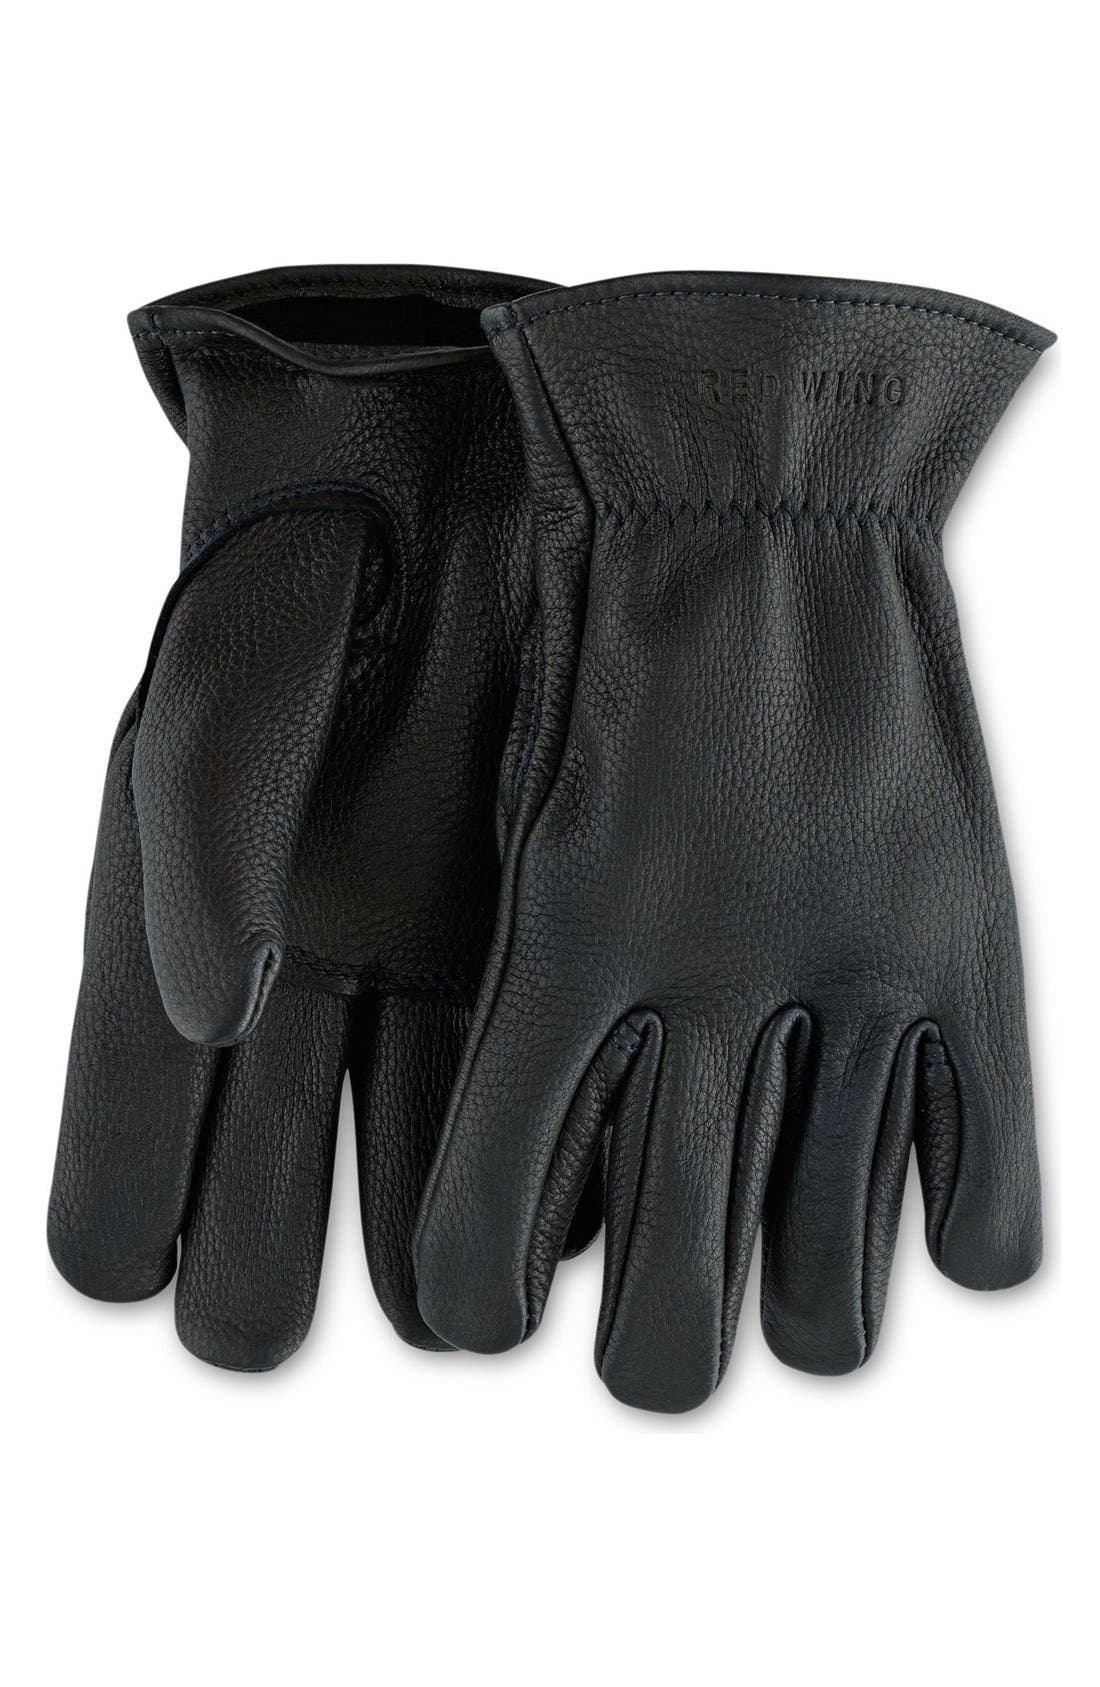 RED WING Buckskin Leather Gloves